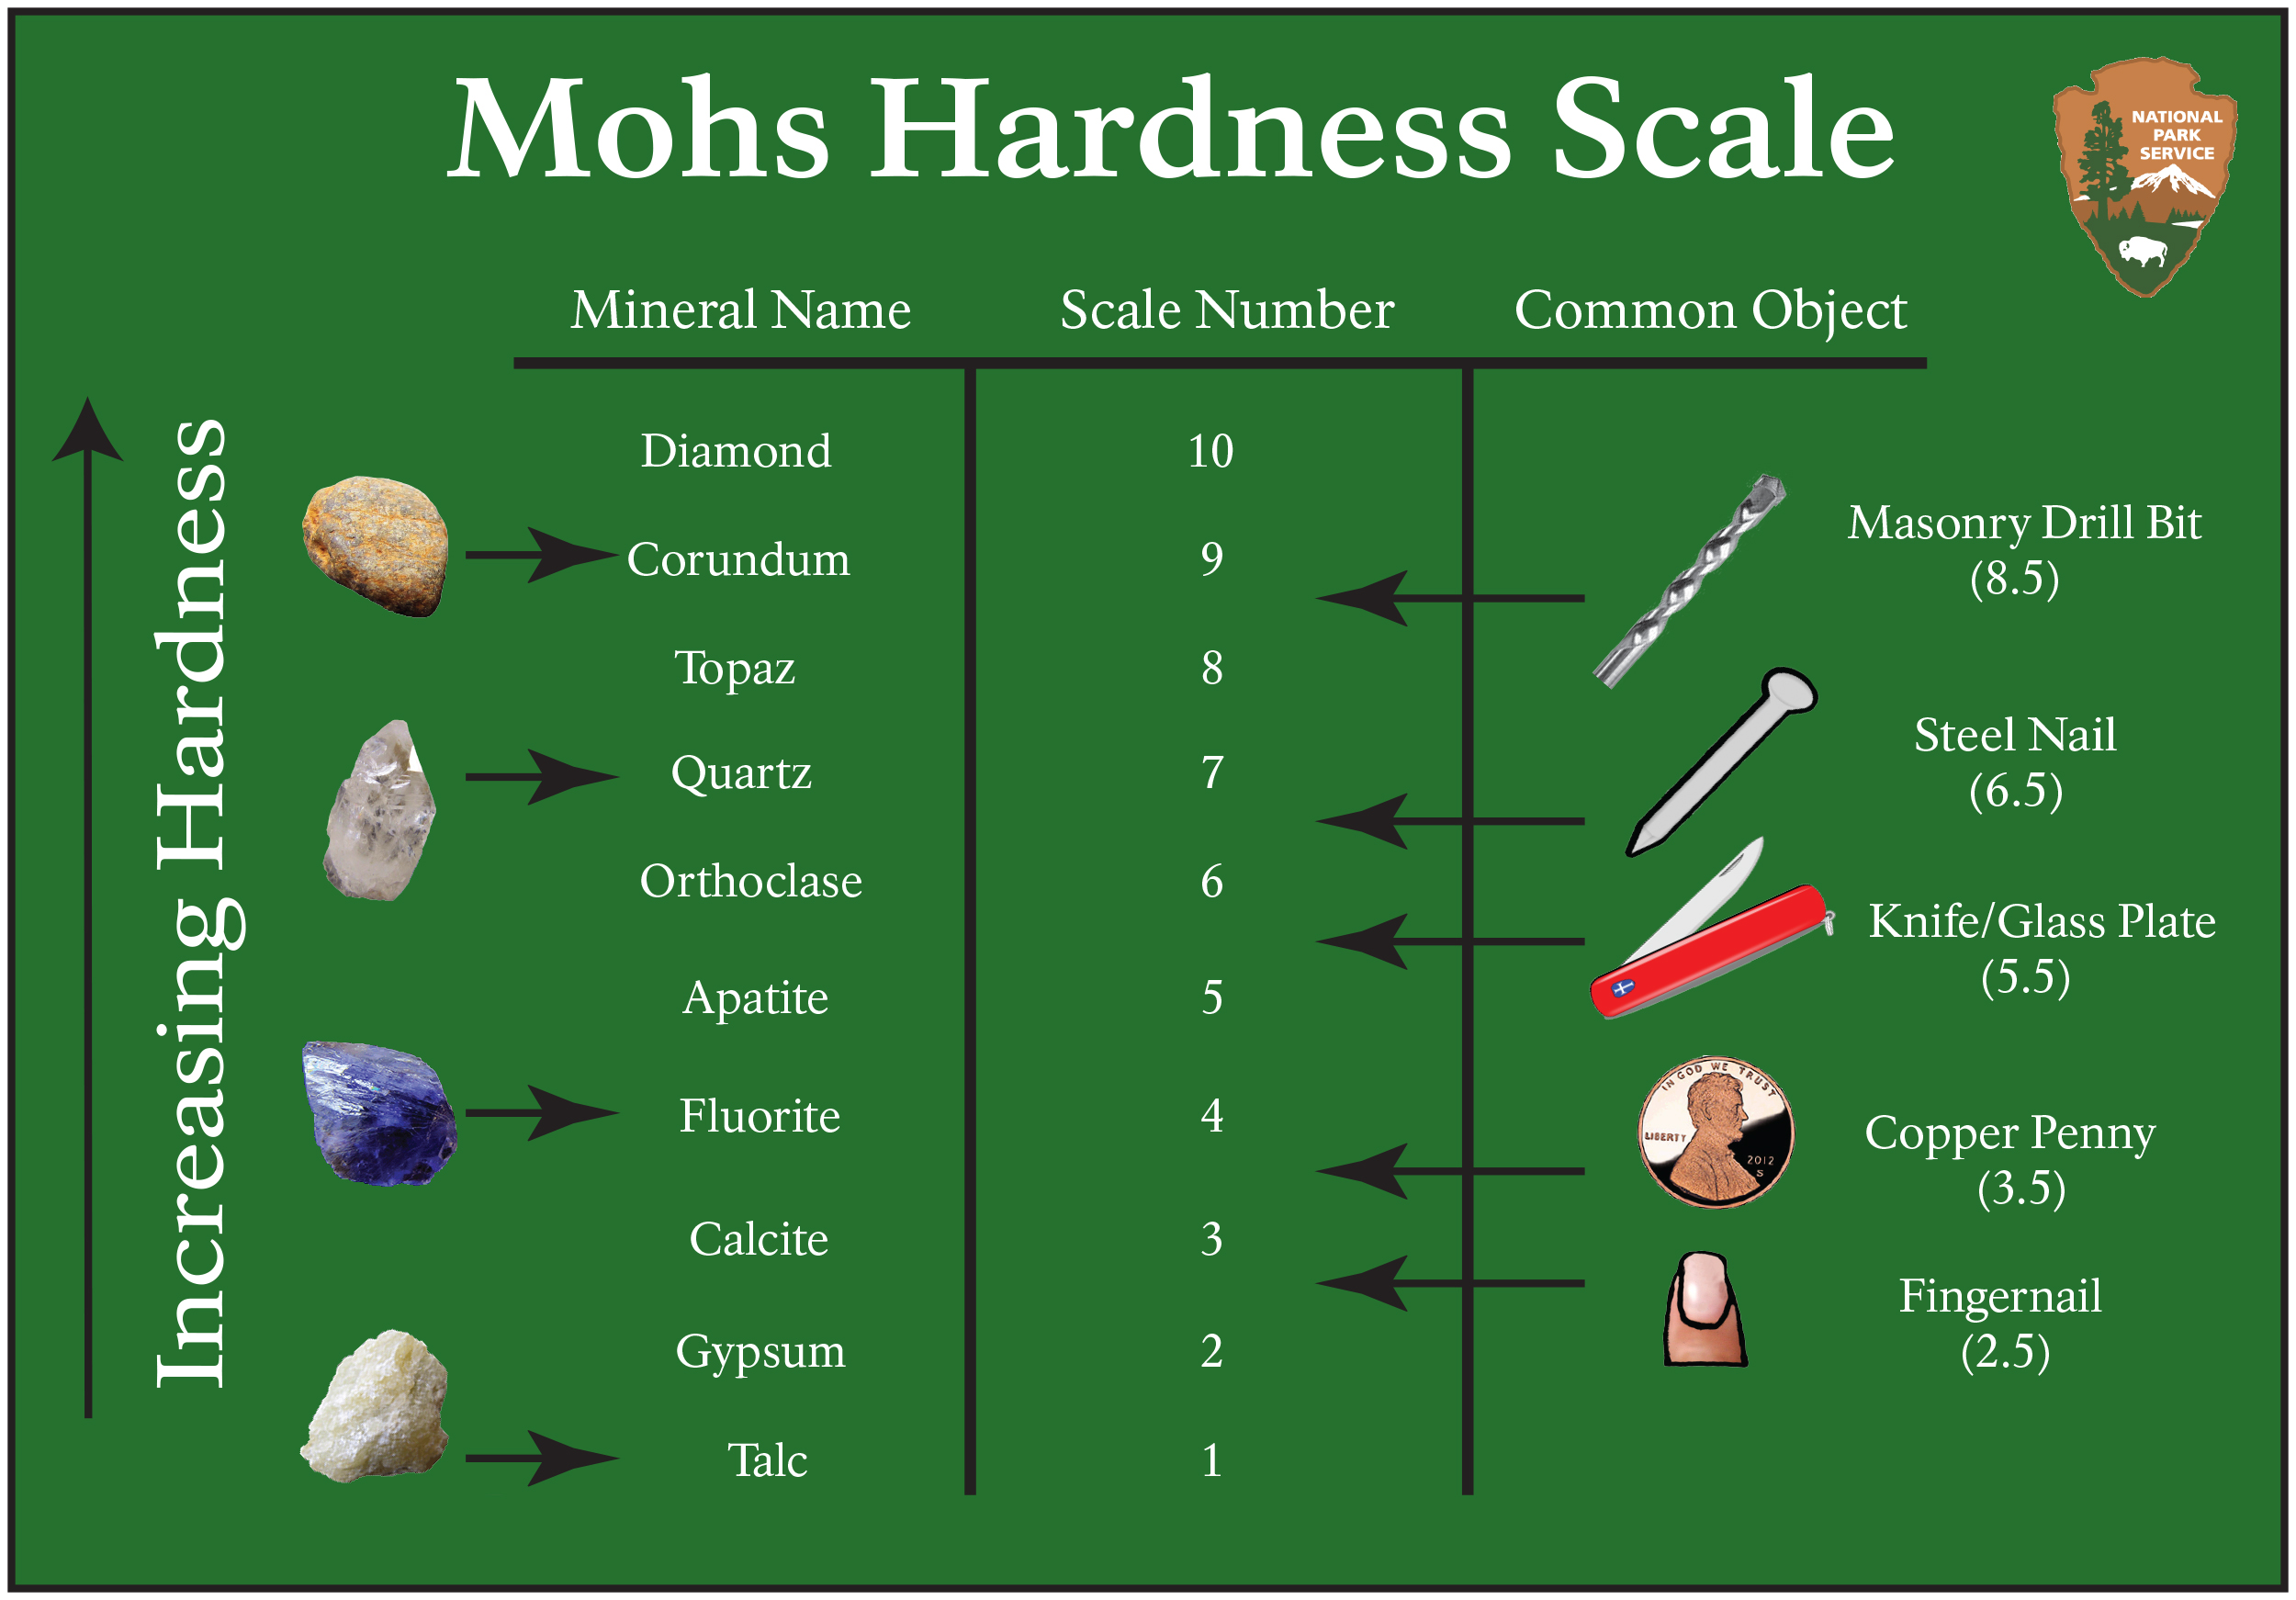 Mohs Hardness Scale (U.S. National Park Service)